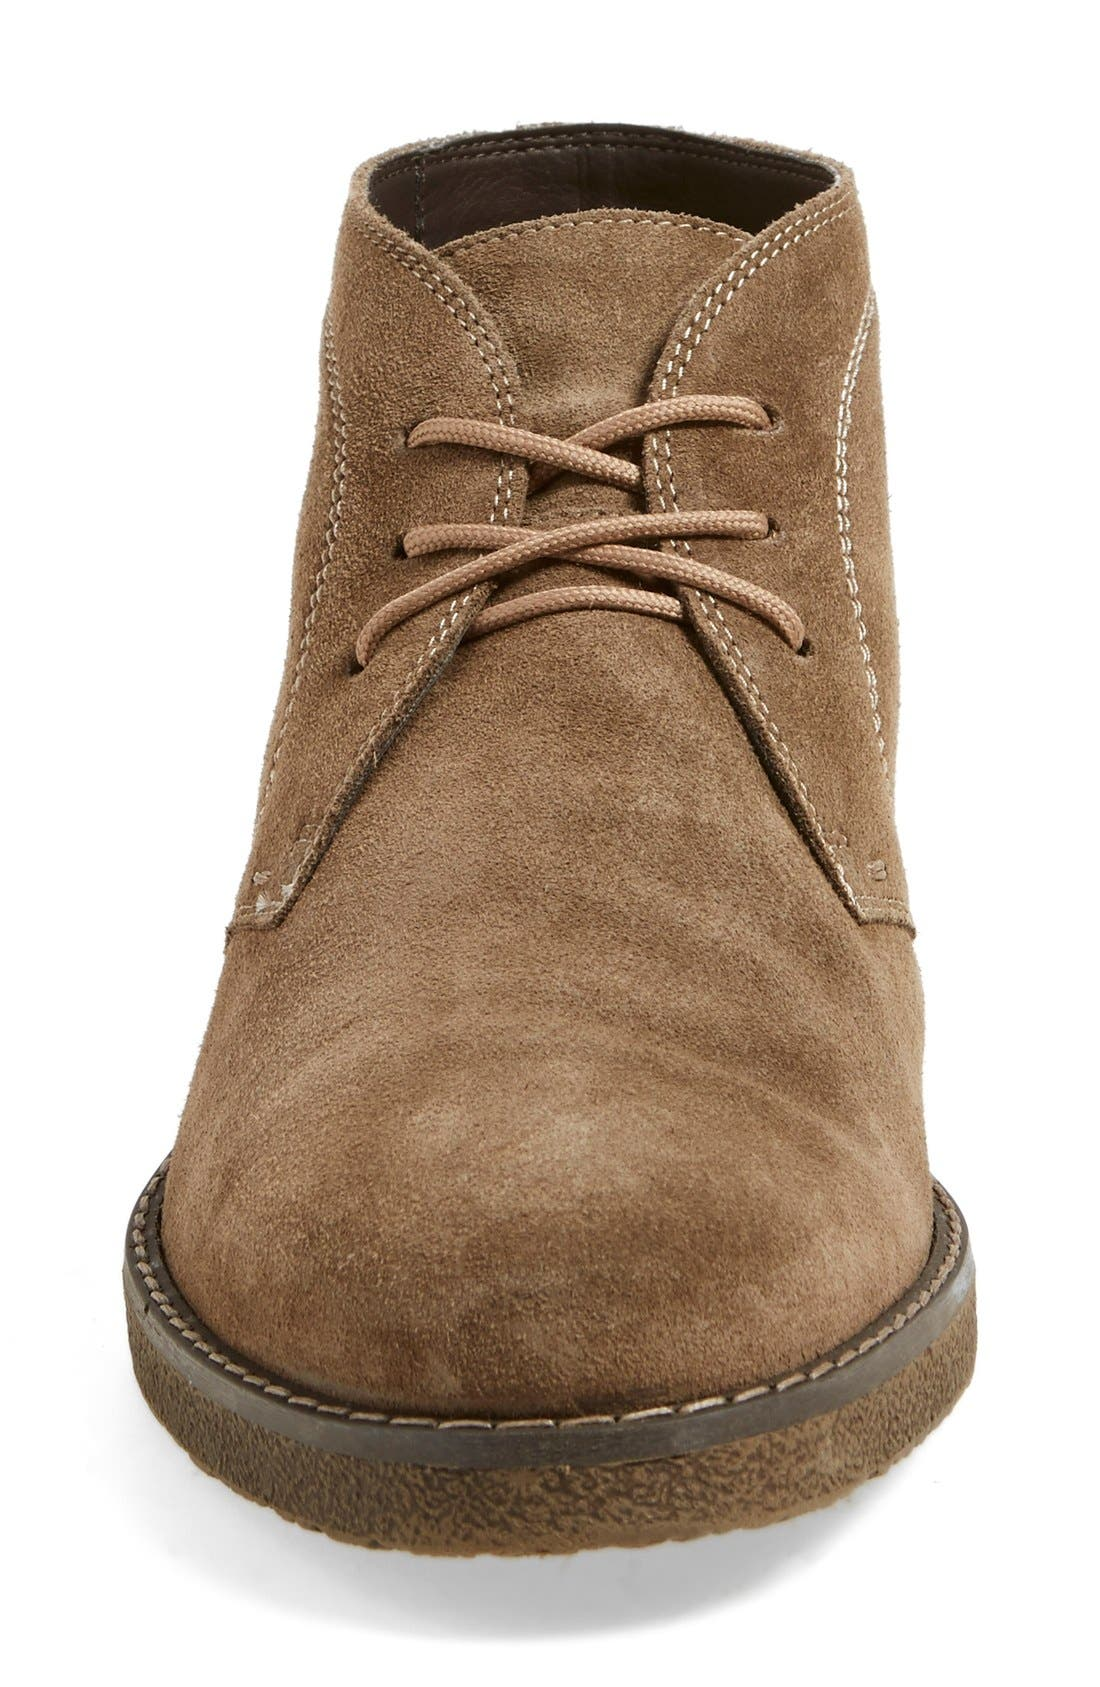 'Tyler' Chukka Boot,                             Alternate thumbnail 3, color,                             Taupe Suede